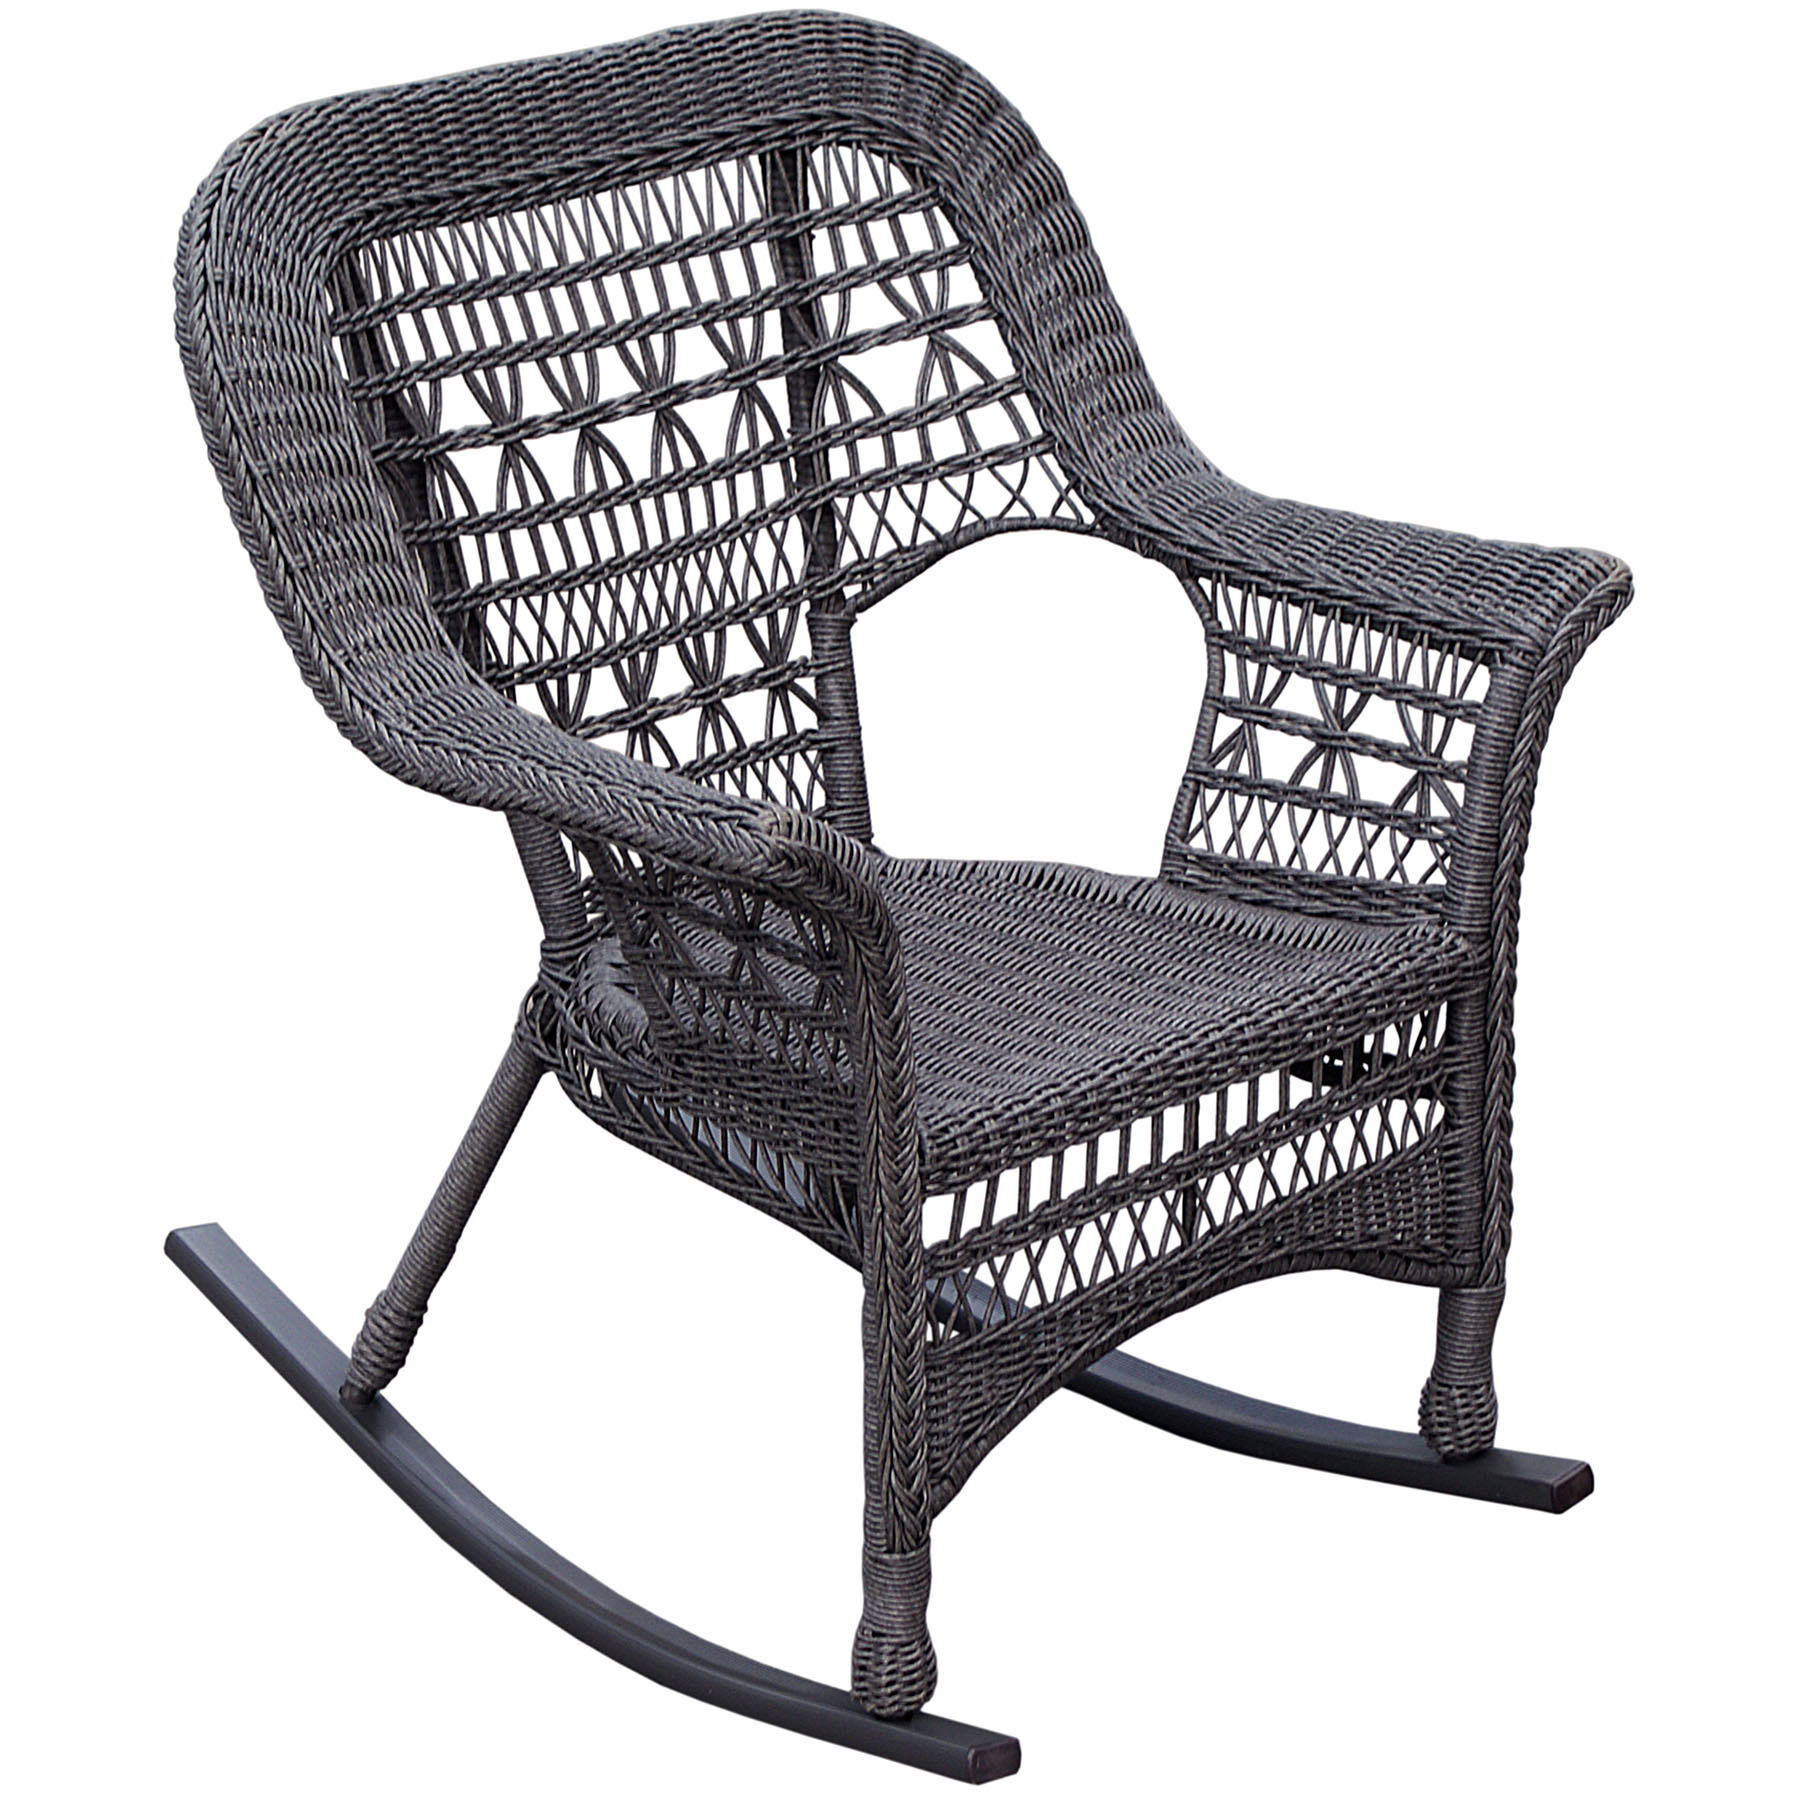 Wicker Rocking Chair Wicker Rocking Chair Grey At Home